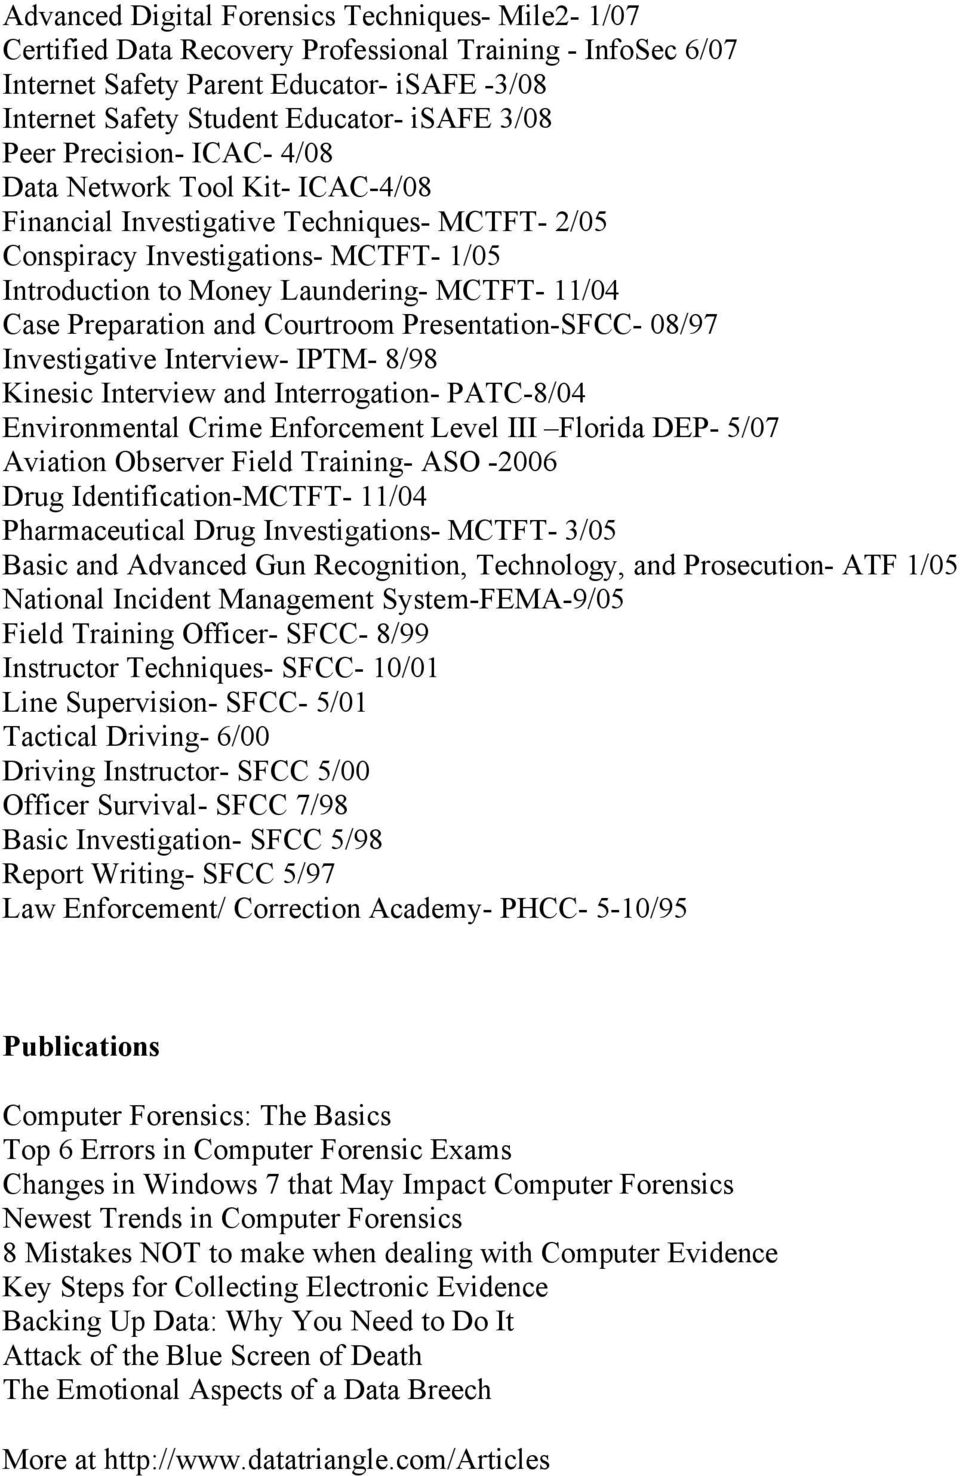 Case Preparation and Courtroom Presentation-SFCC- 08/97 Investigative Interview- IPTM- 8/98 Kinesic Interview and Interrogation- PATC-8/04 Environmental Crime Enforcement Level III Florida DEP- 5/07